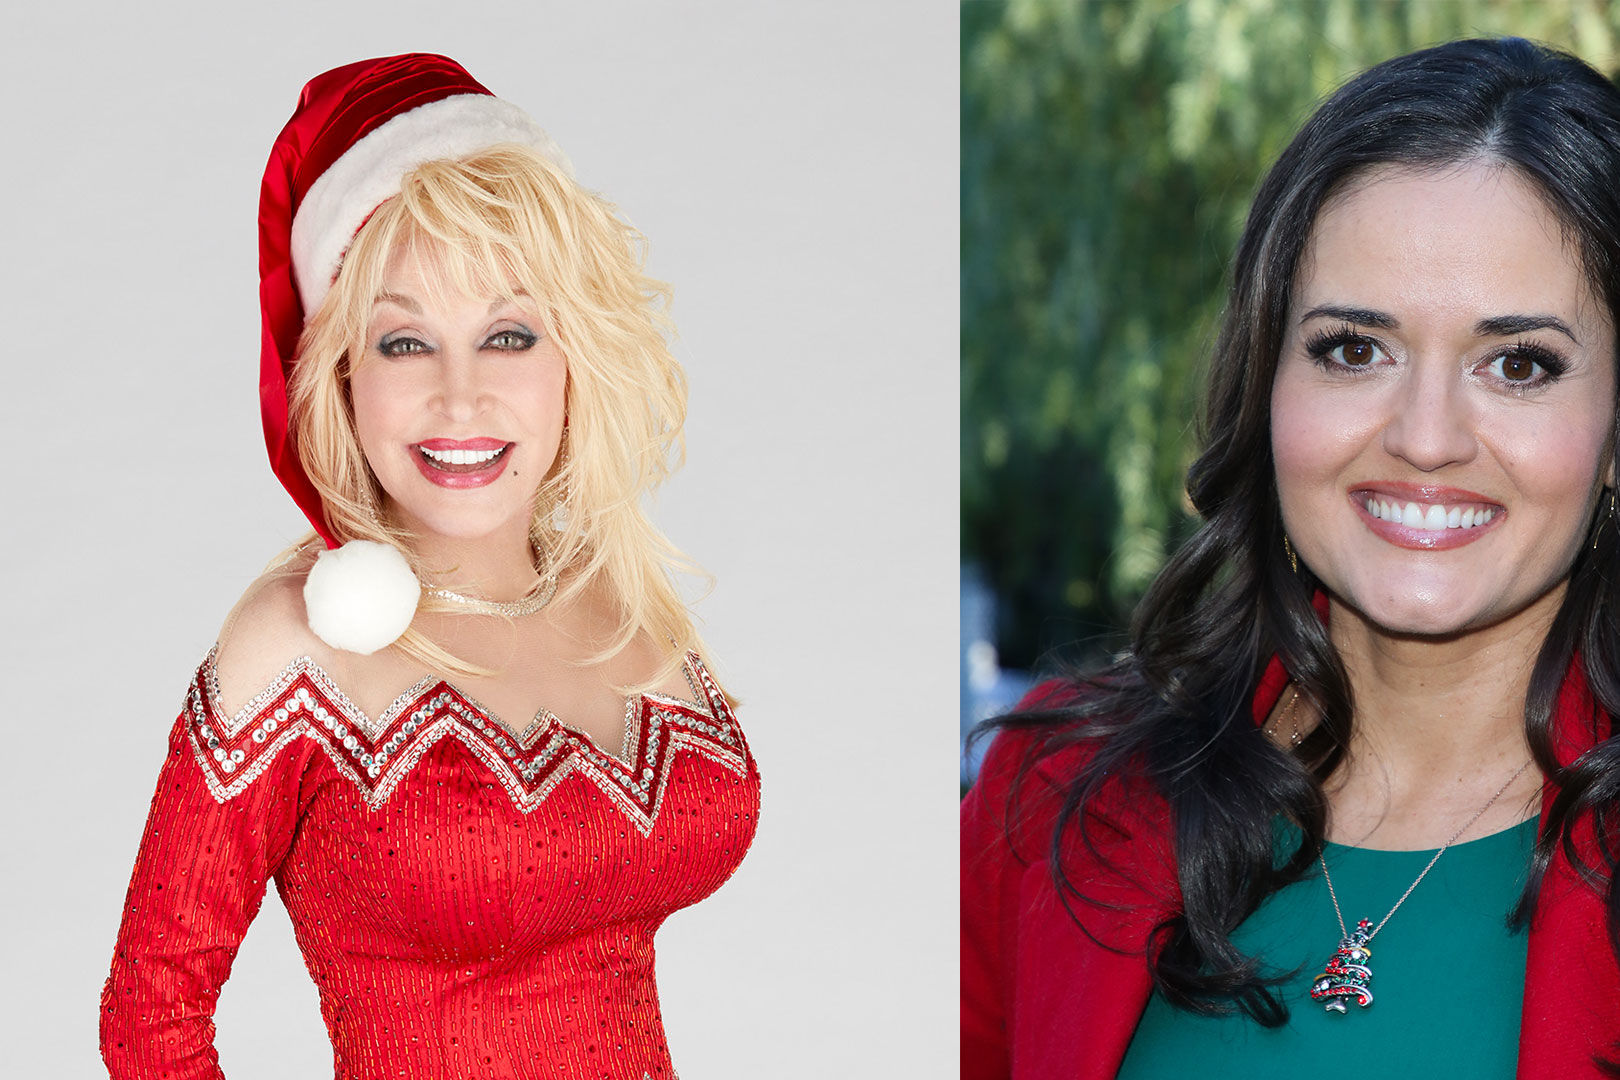 WATCH: Dolly Parton and Hallmark Are Teaming up for the Christmas Movie of Our Dreams!